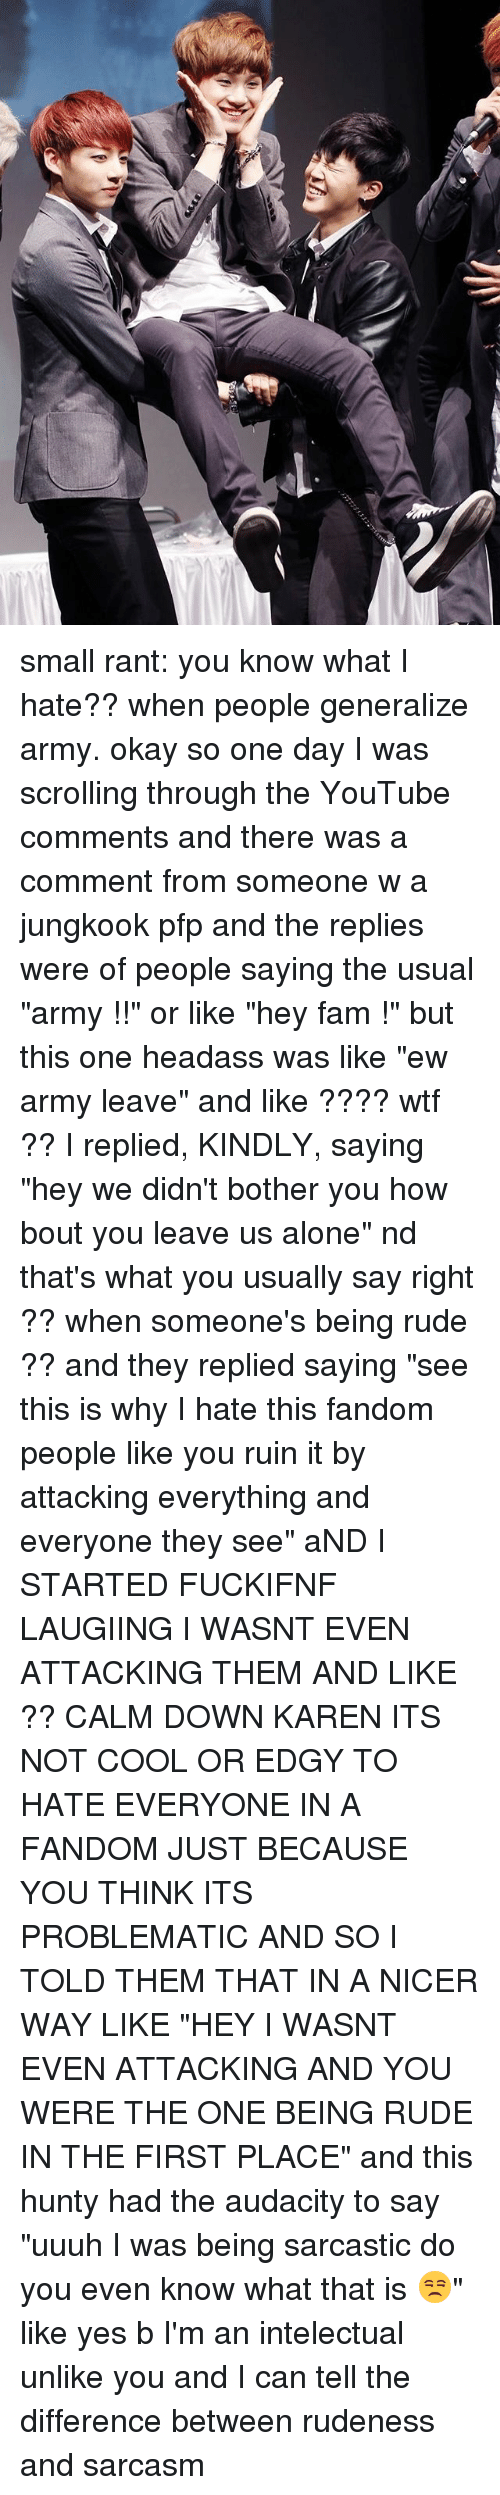 """Botherers: small rant: you know what I hate?? when people generalize army. okay so one day I was scrolling through the YouTube comments and there was a comment from someone w a jungkook pfp and the replies were of people saying the usual """"army !!"""" or like """"hey fam !"""" but this one headass was like """"ew army leave"""" and like ???? wtf ?? I replied, KINDLY, saying """"hey we didn't bother you how bout you leave us alone"""" nd that's what you usually say right ?? when someone's being rude ?? and they replied saying """"see this is why I hate this fandom people like you ruin it by attacking everything and everyone they see"""" aND I STARTED FUCKIFNF LAUGIING I WASNT EVEN ATTACKING THEM AND LIKE ?? CALM DOWN KAREN ITS NOT COOL OR EDGY TO HATE EVERYONE IN A FANDOM JUST BECAUSE YOU THINK ITS PROBLEMATIC AND SO I TOLD THEM THAT IN A NICER WAY LIKE """"HEY I WASNT EVEN ATTACKING AND YOU WERE THE ONE BEING RUDE IN THE FIRST PLACE"""" and this hunty had the audacity to say """"uuuh I was being sarcastic do you even know what that is 😒"""" like yes b I'm an intelectual unlike you and I can tell the difference between rudeness and sarcasm"""